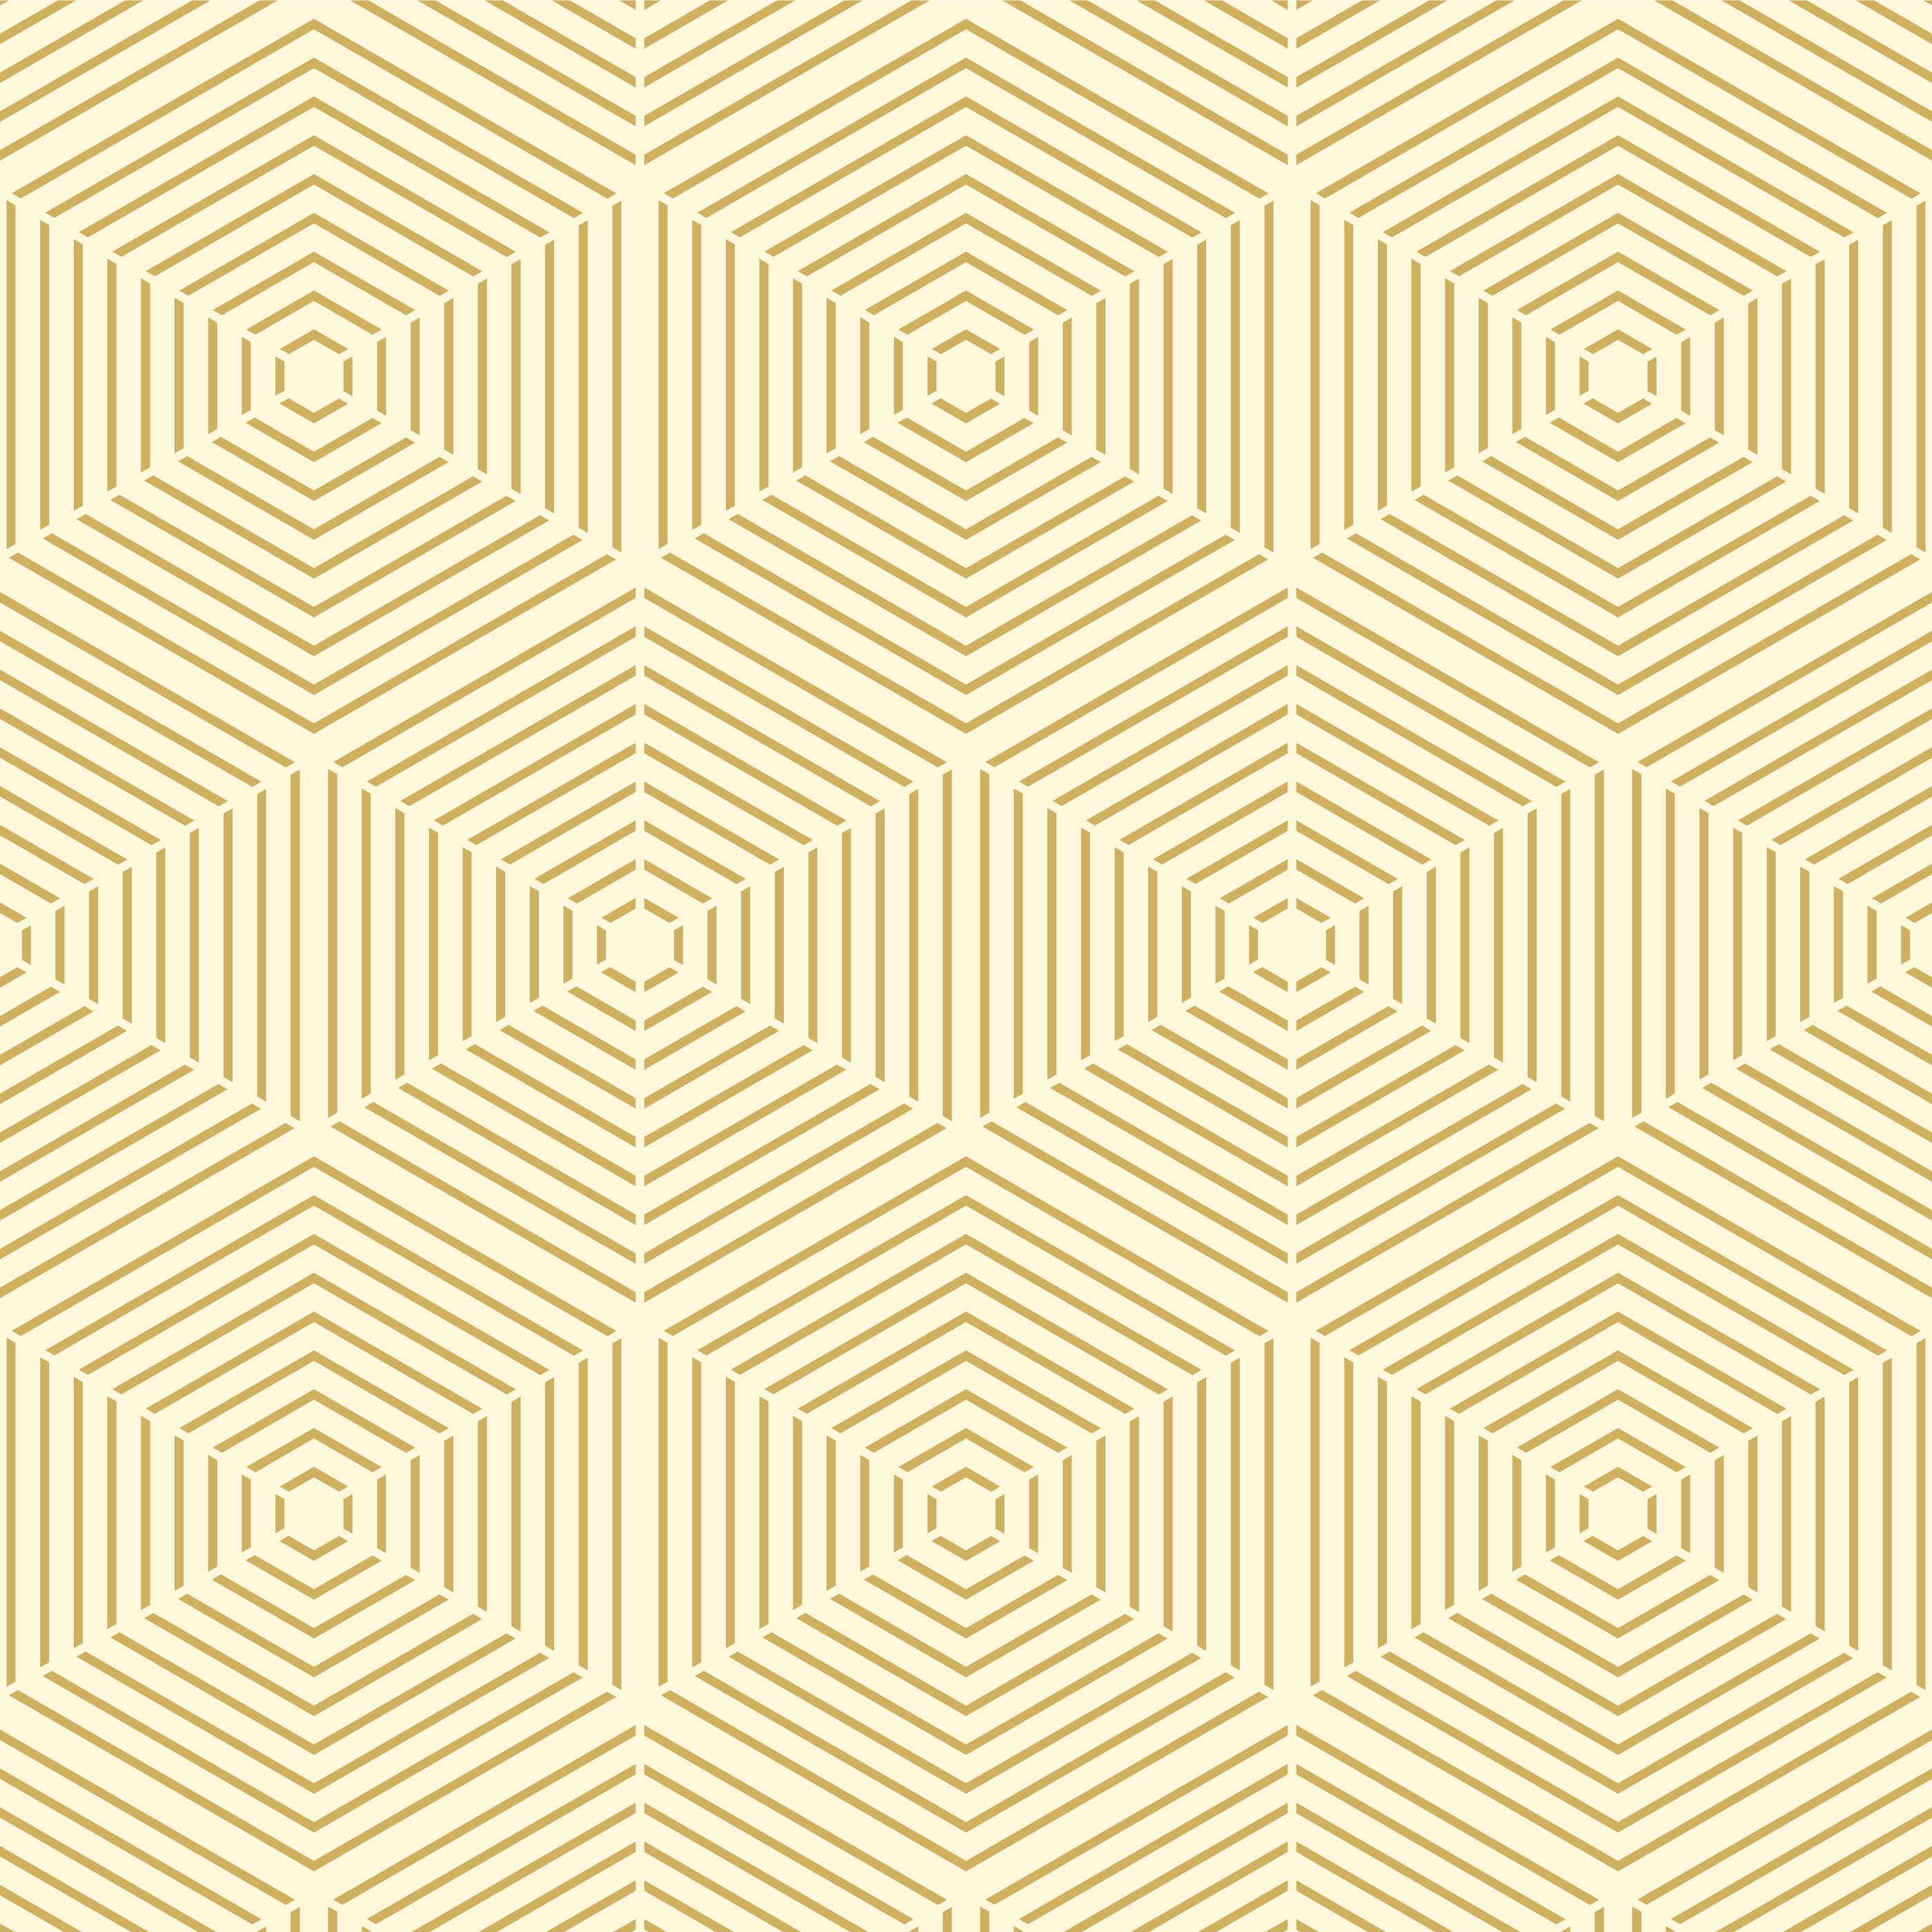 Geometric Gold Line Hexagon Seamless Pattern vector